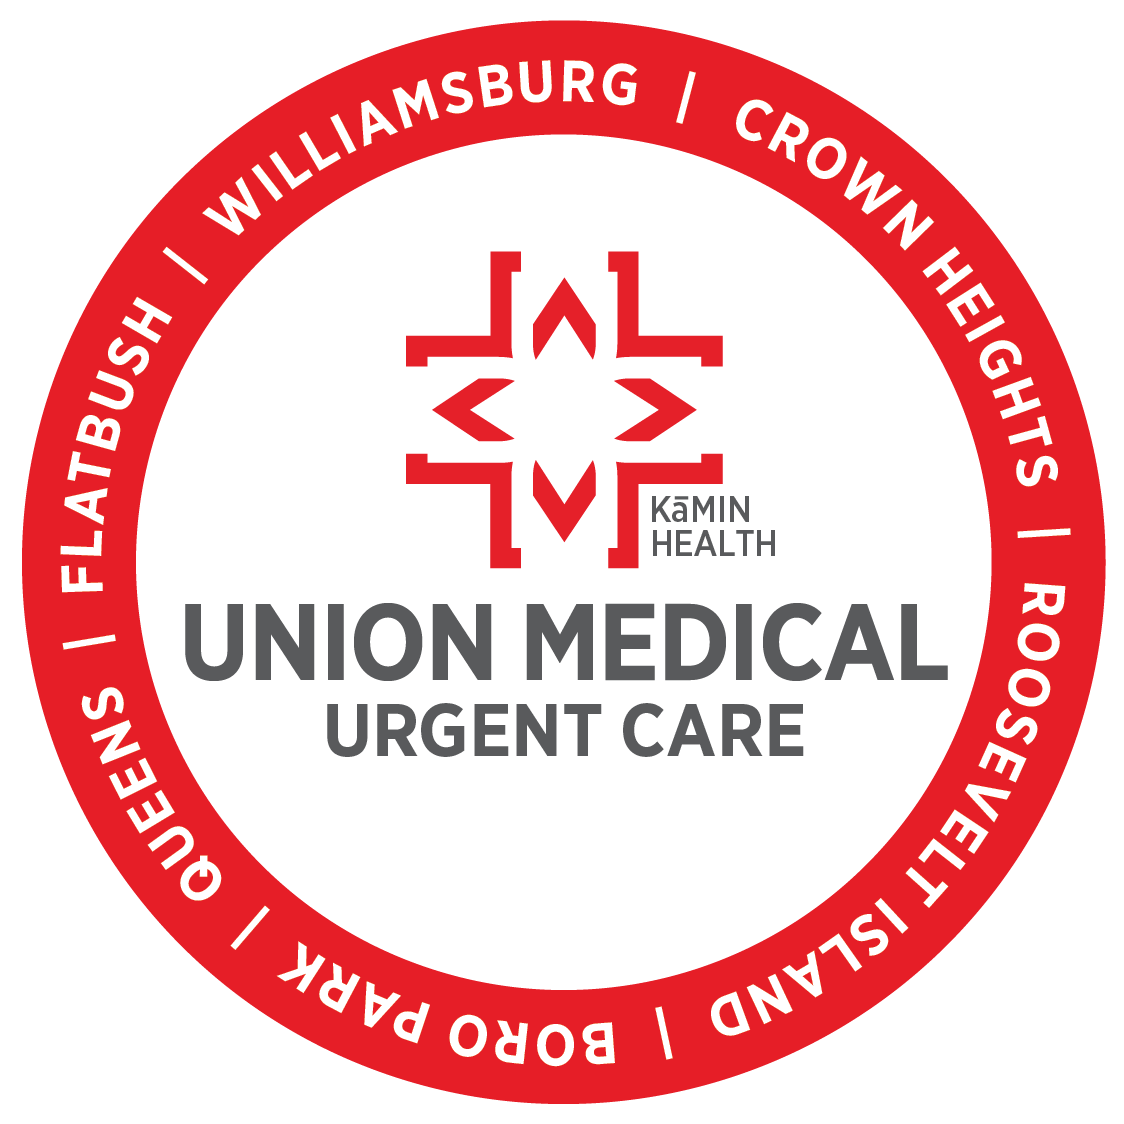 Kāmin Health - Union Medical Urgent Care